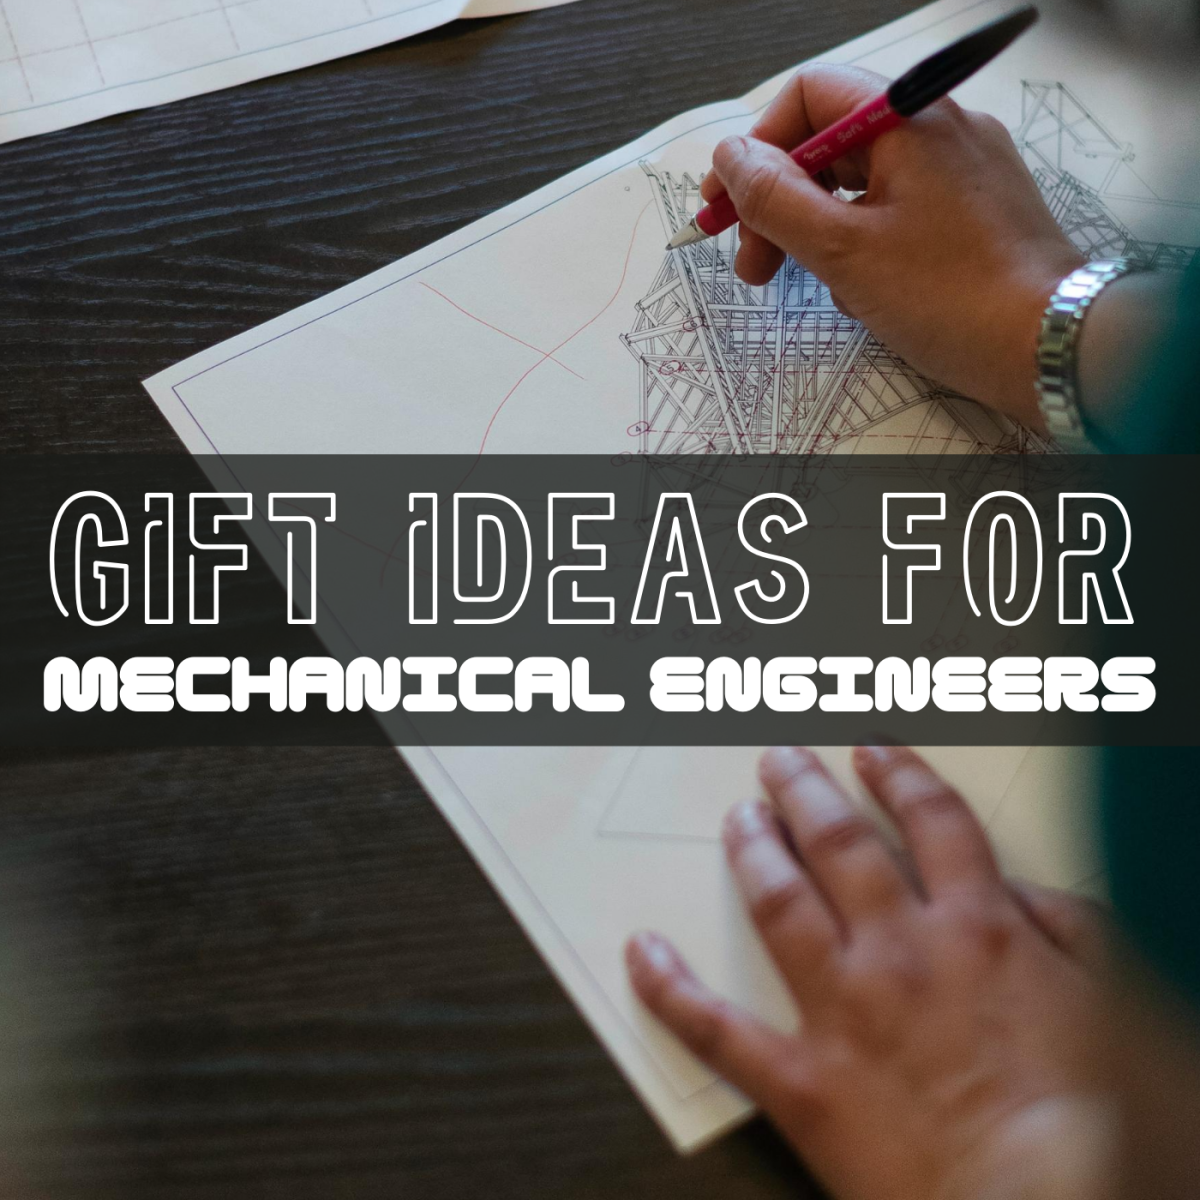 Wondering what to get a mechanical engineering student for graduation or a birthday? Look no further.